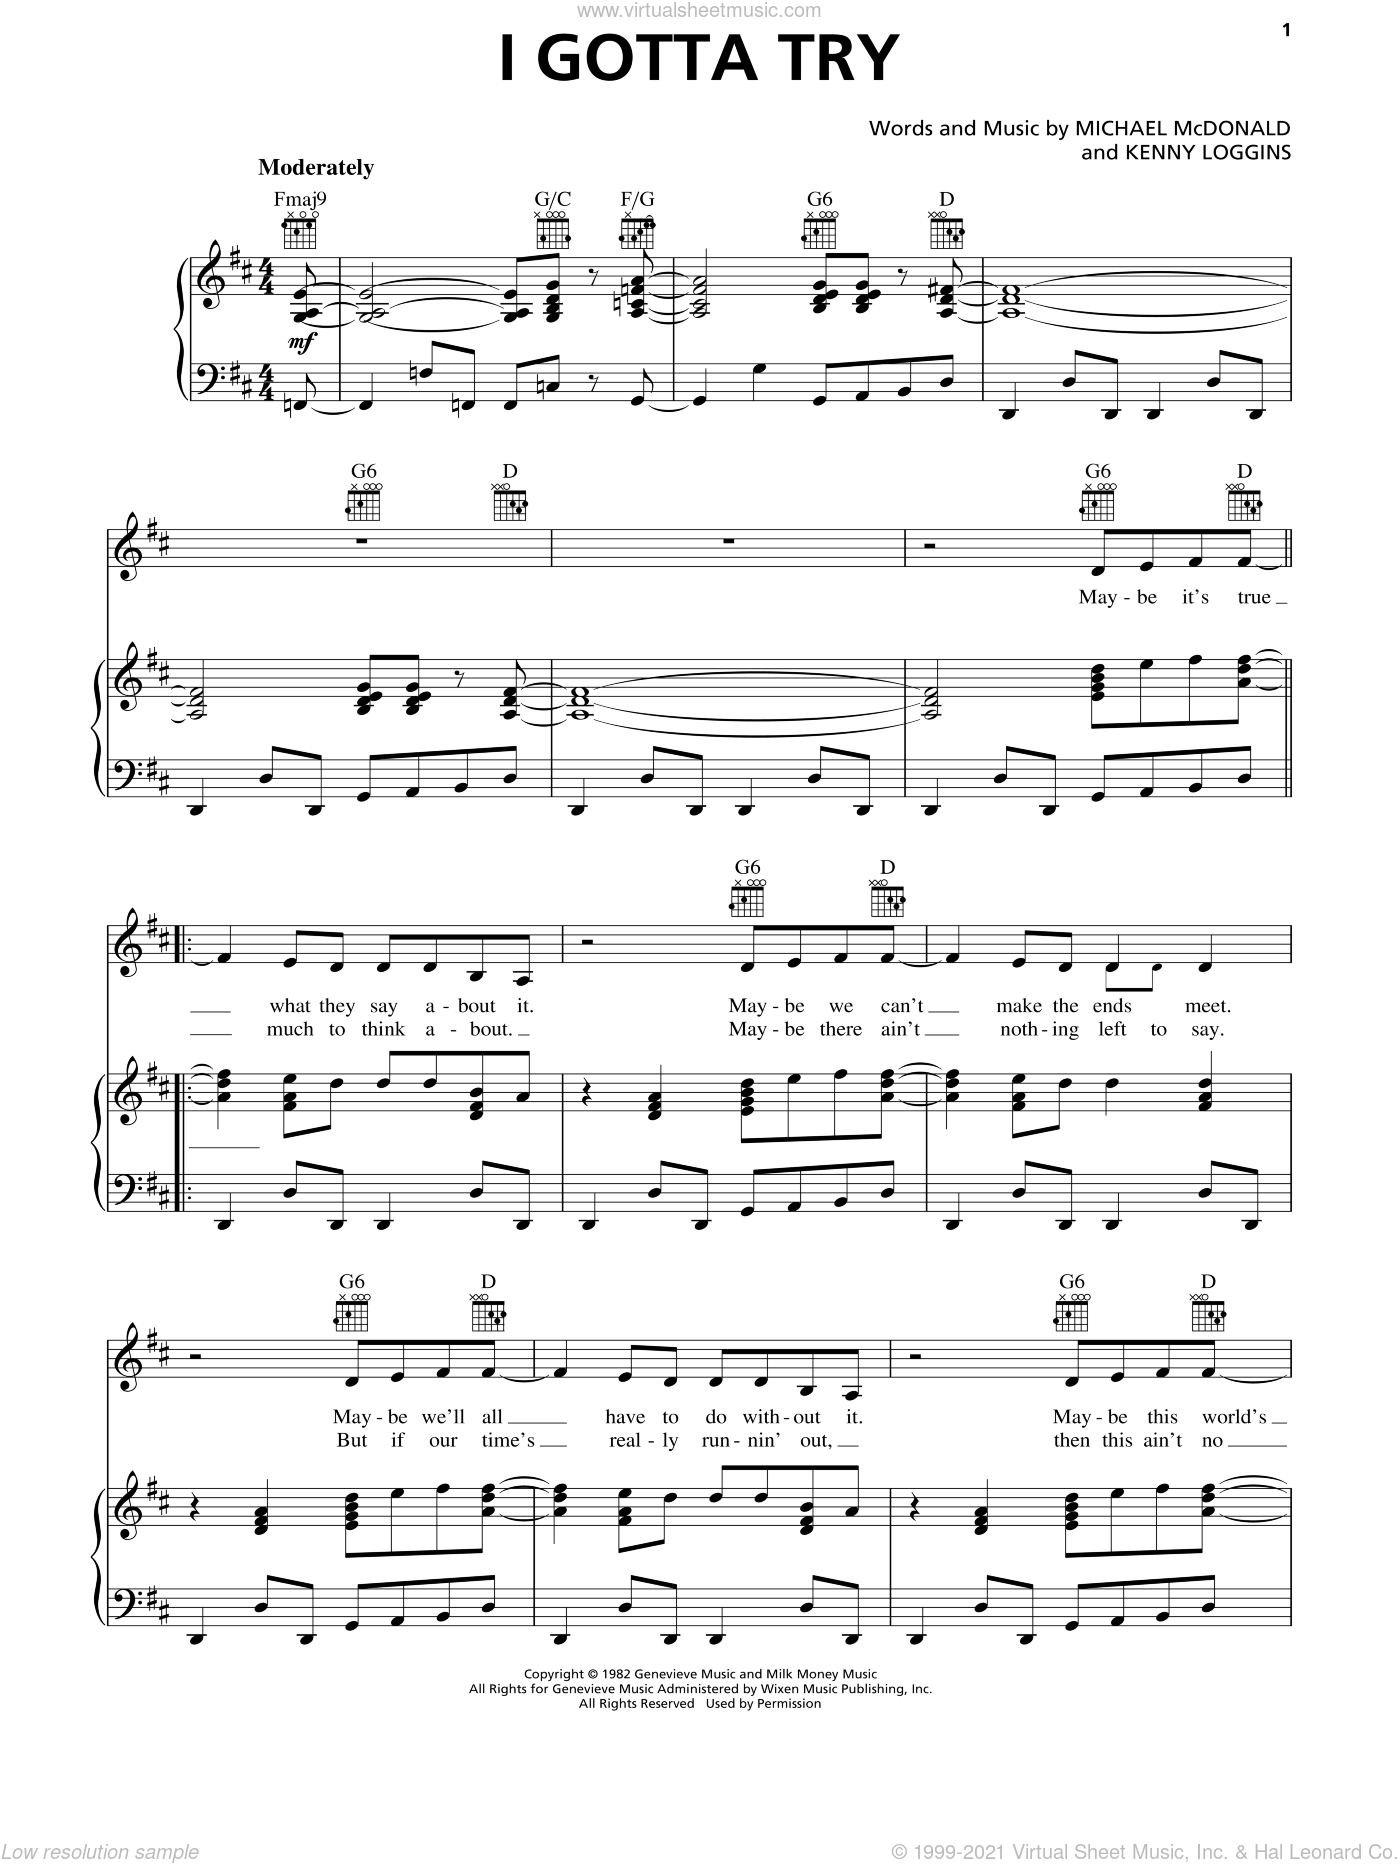 I Gotta Try sheet music for voice, piano or guitar by Kenny Loggins